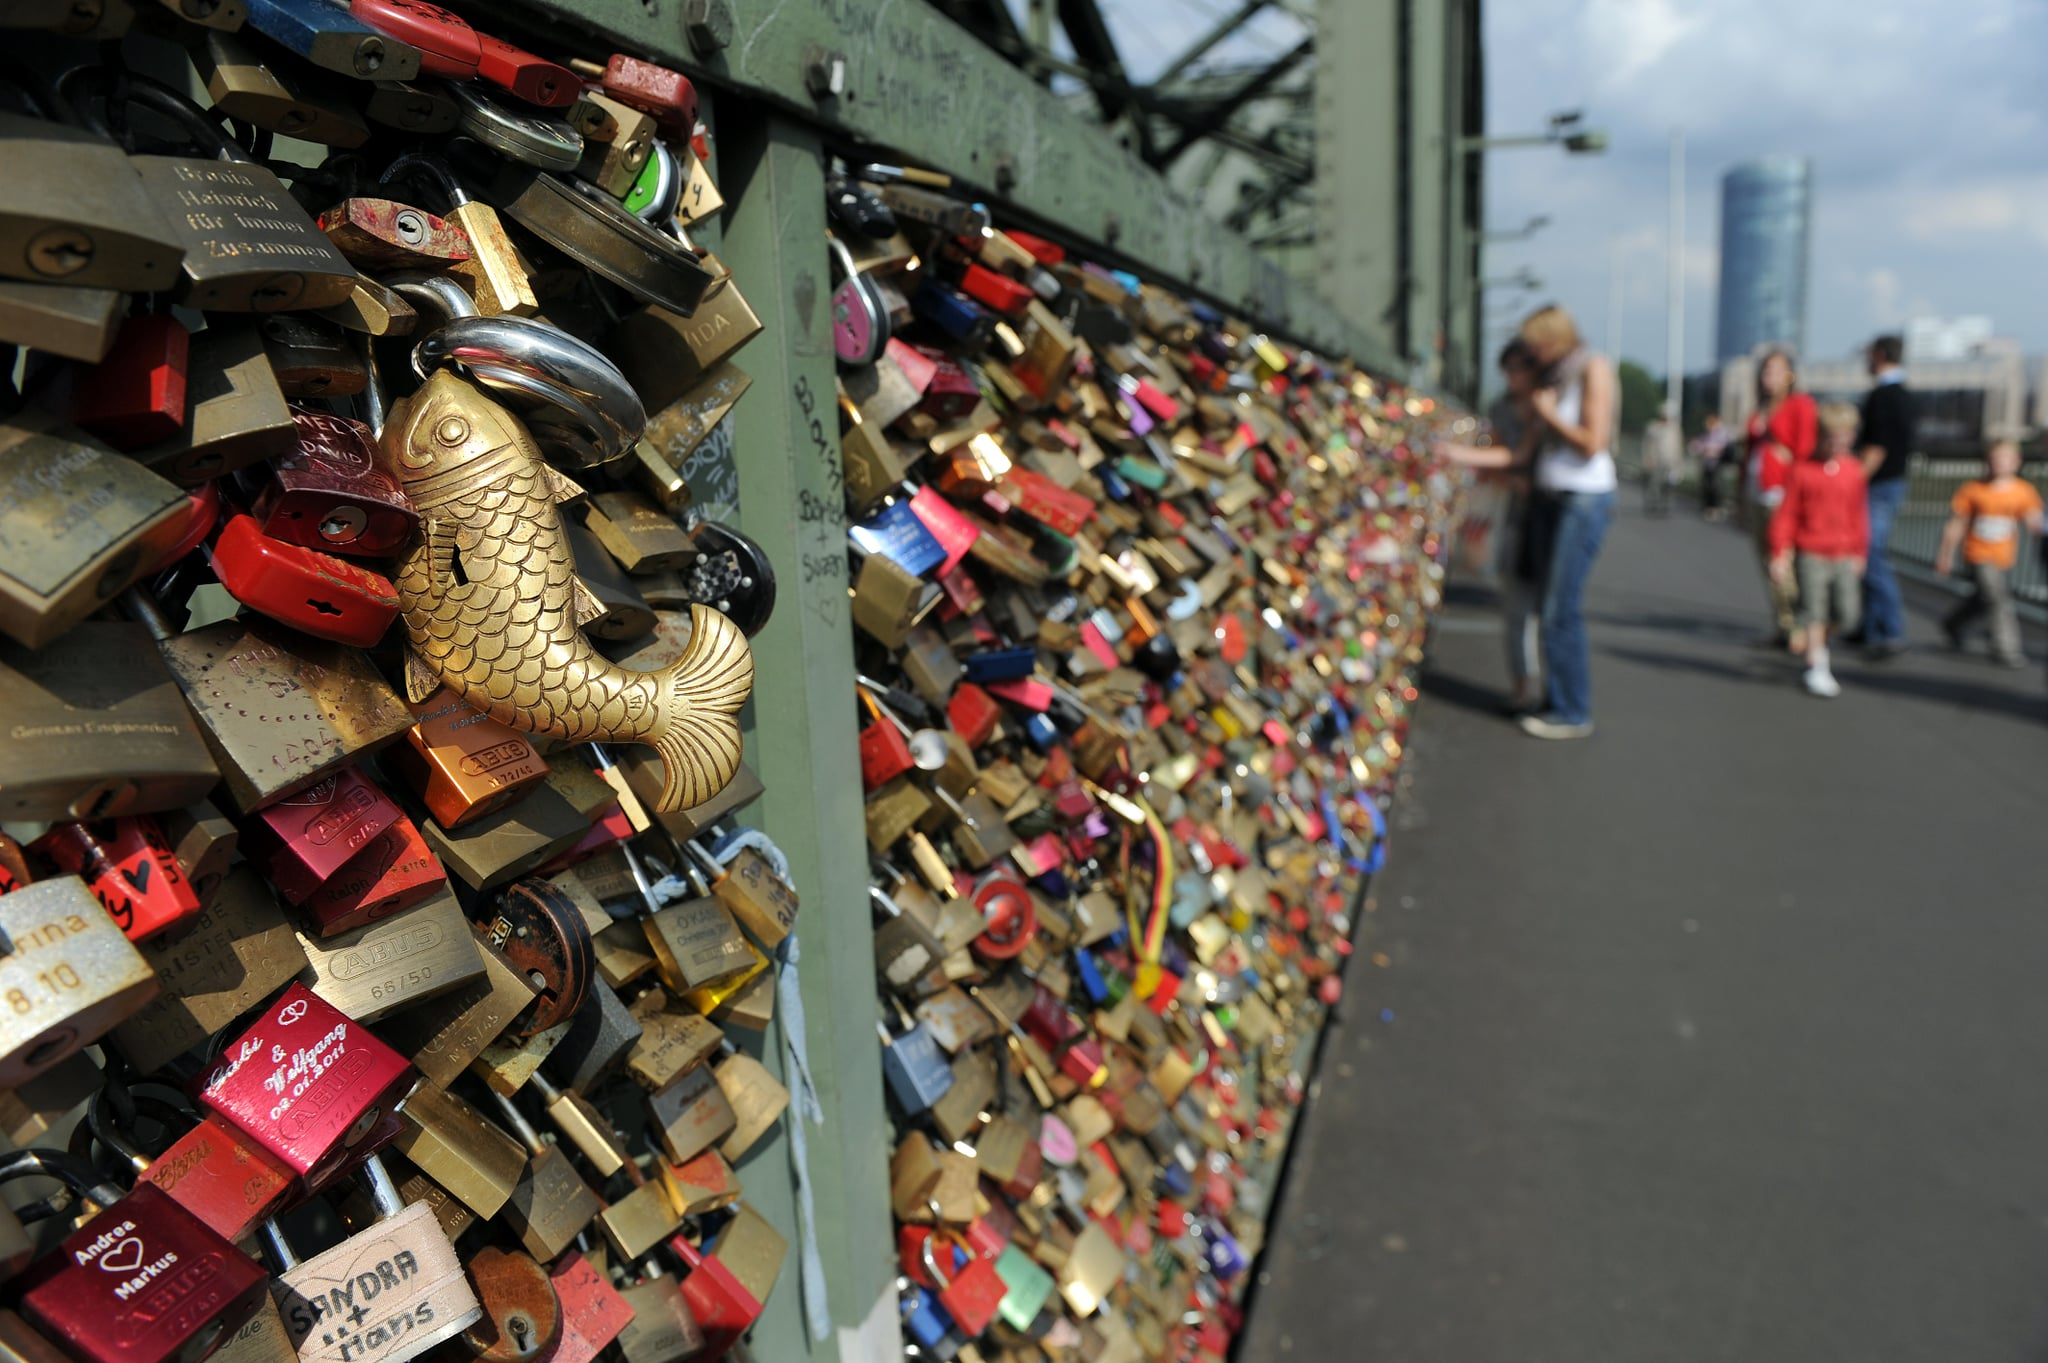 People looked at the Liebesschloesser, or love padlocks, attached to a fence on Hohenzollernbruecke bridge in Cologne, Germany.